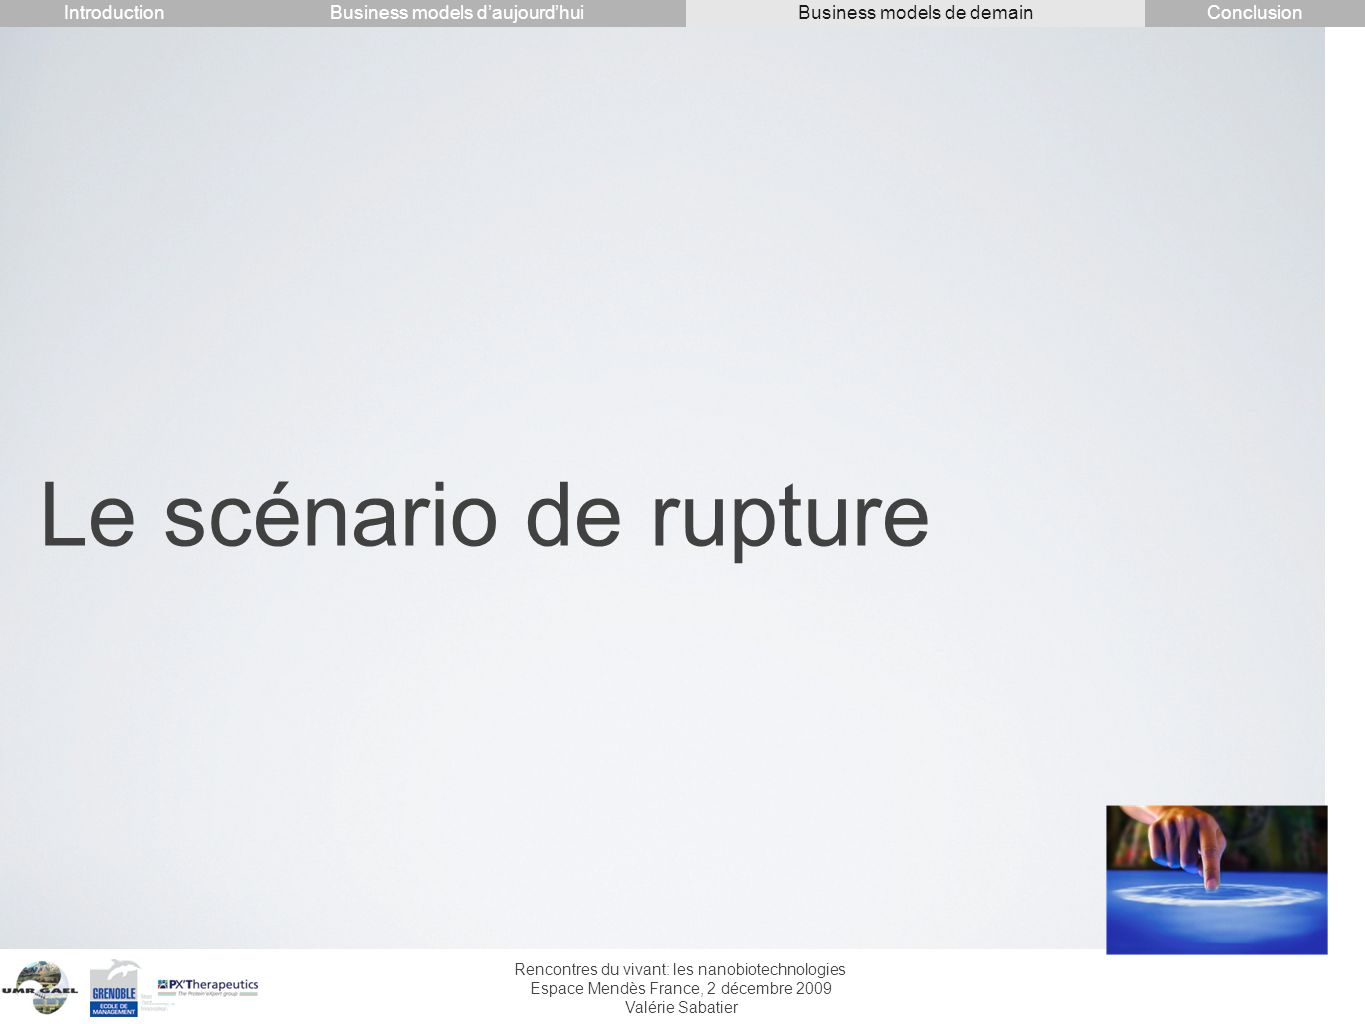 Le scénario de rupture Introduction Conclusion